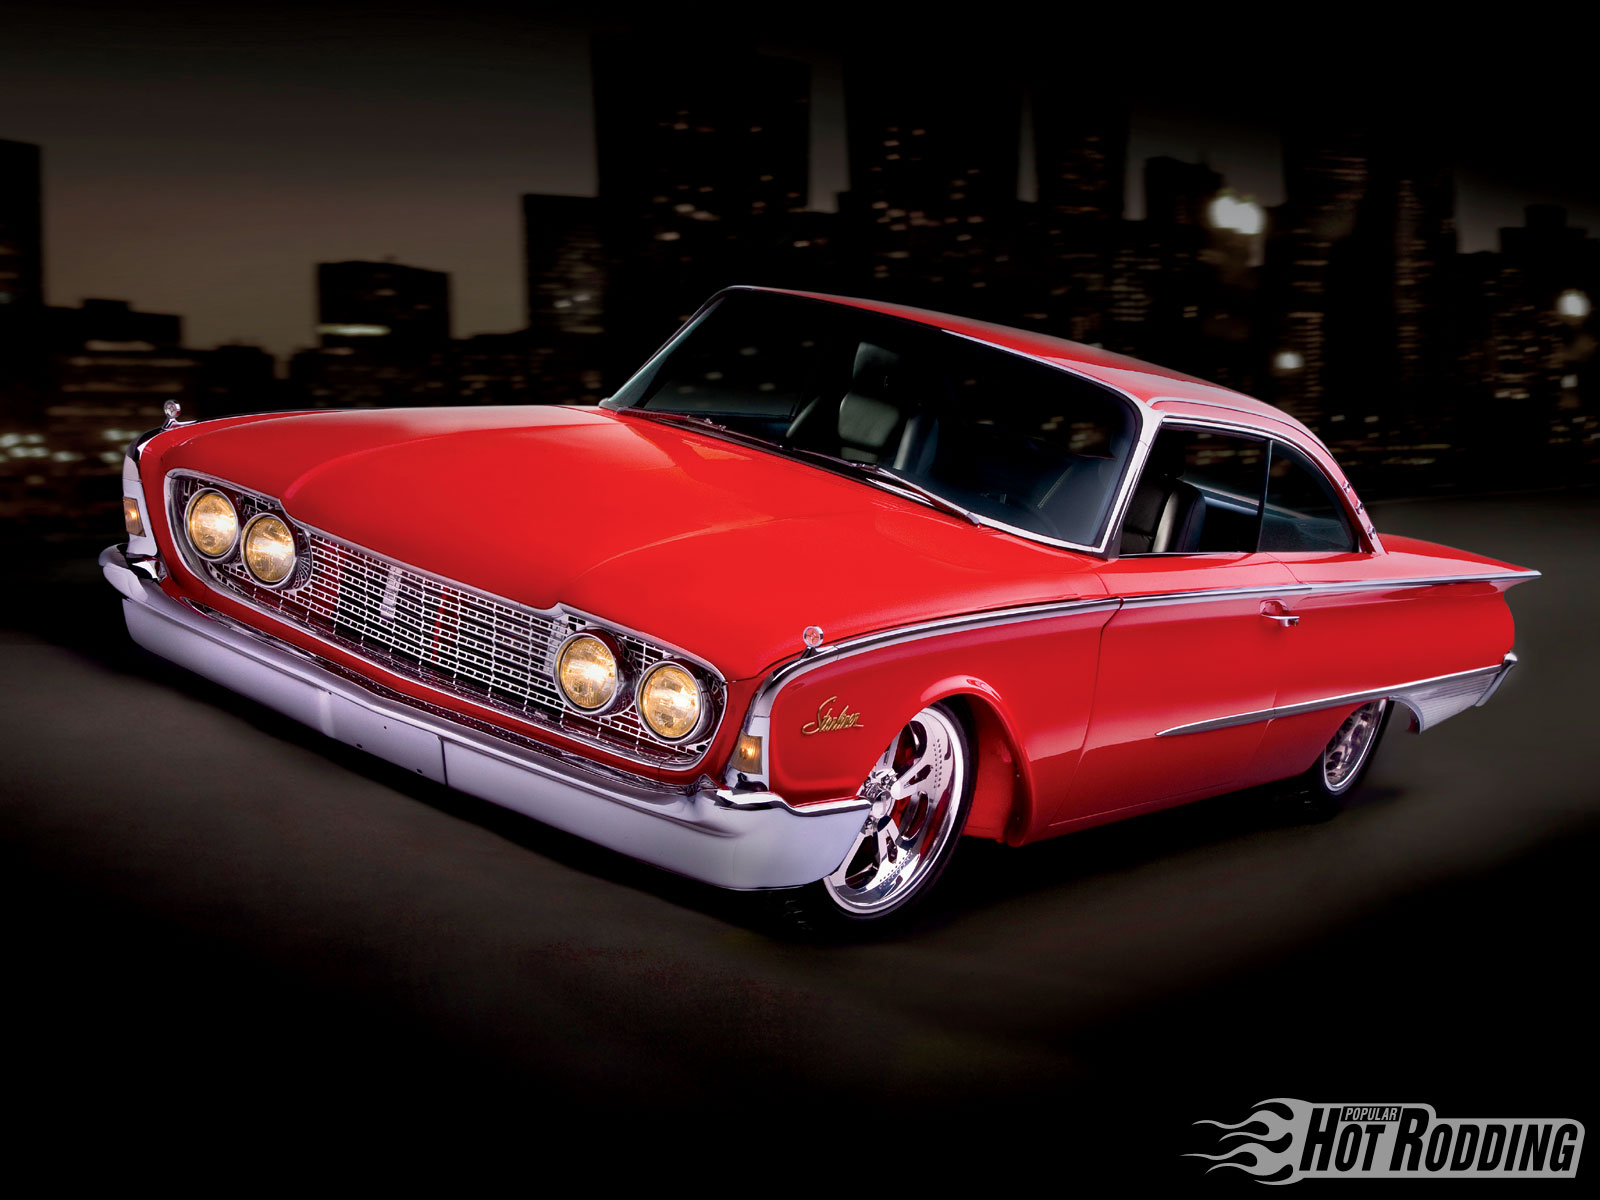 Classic Car Wallpaper 57 Chevy Way Cool Jr S World Ramblings On About My Interests And